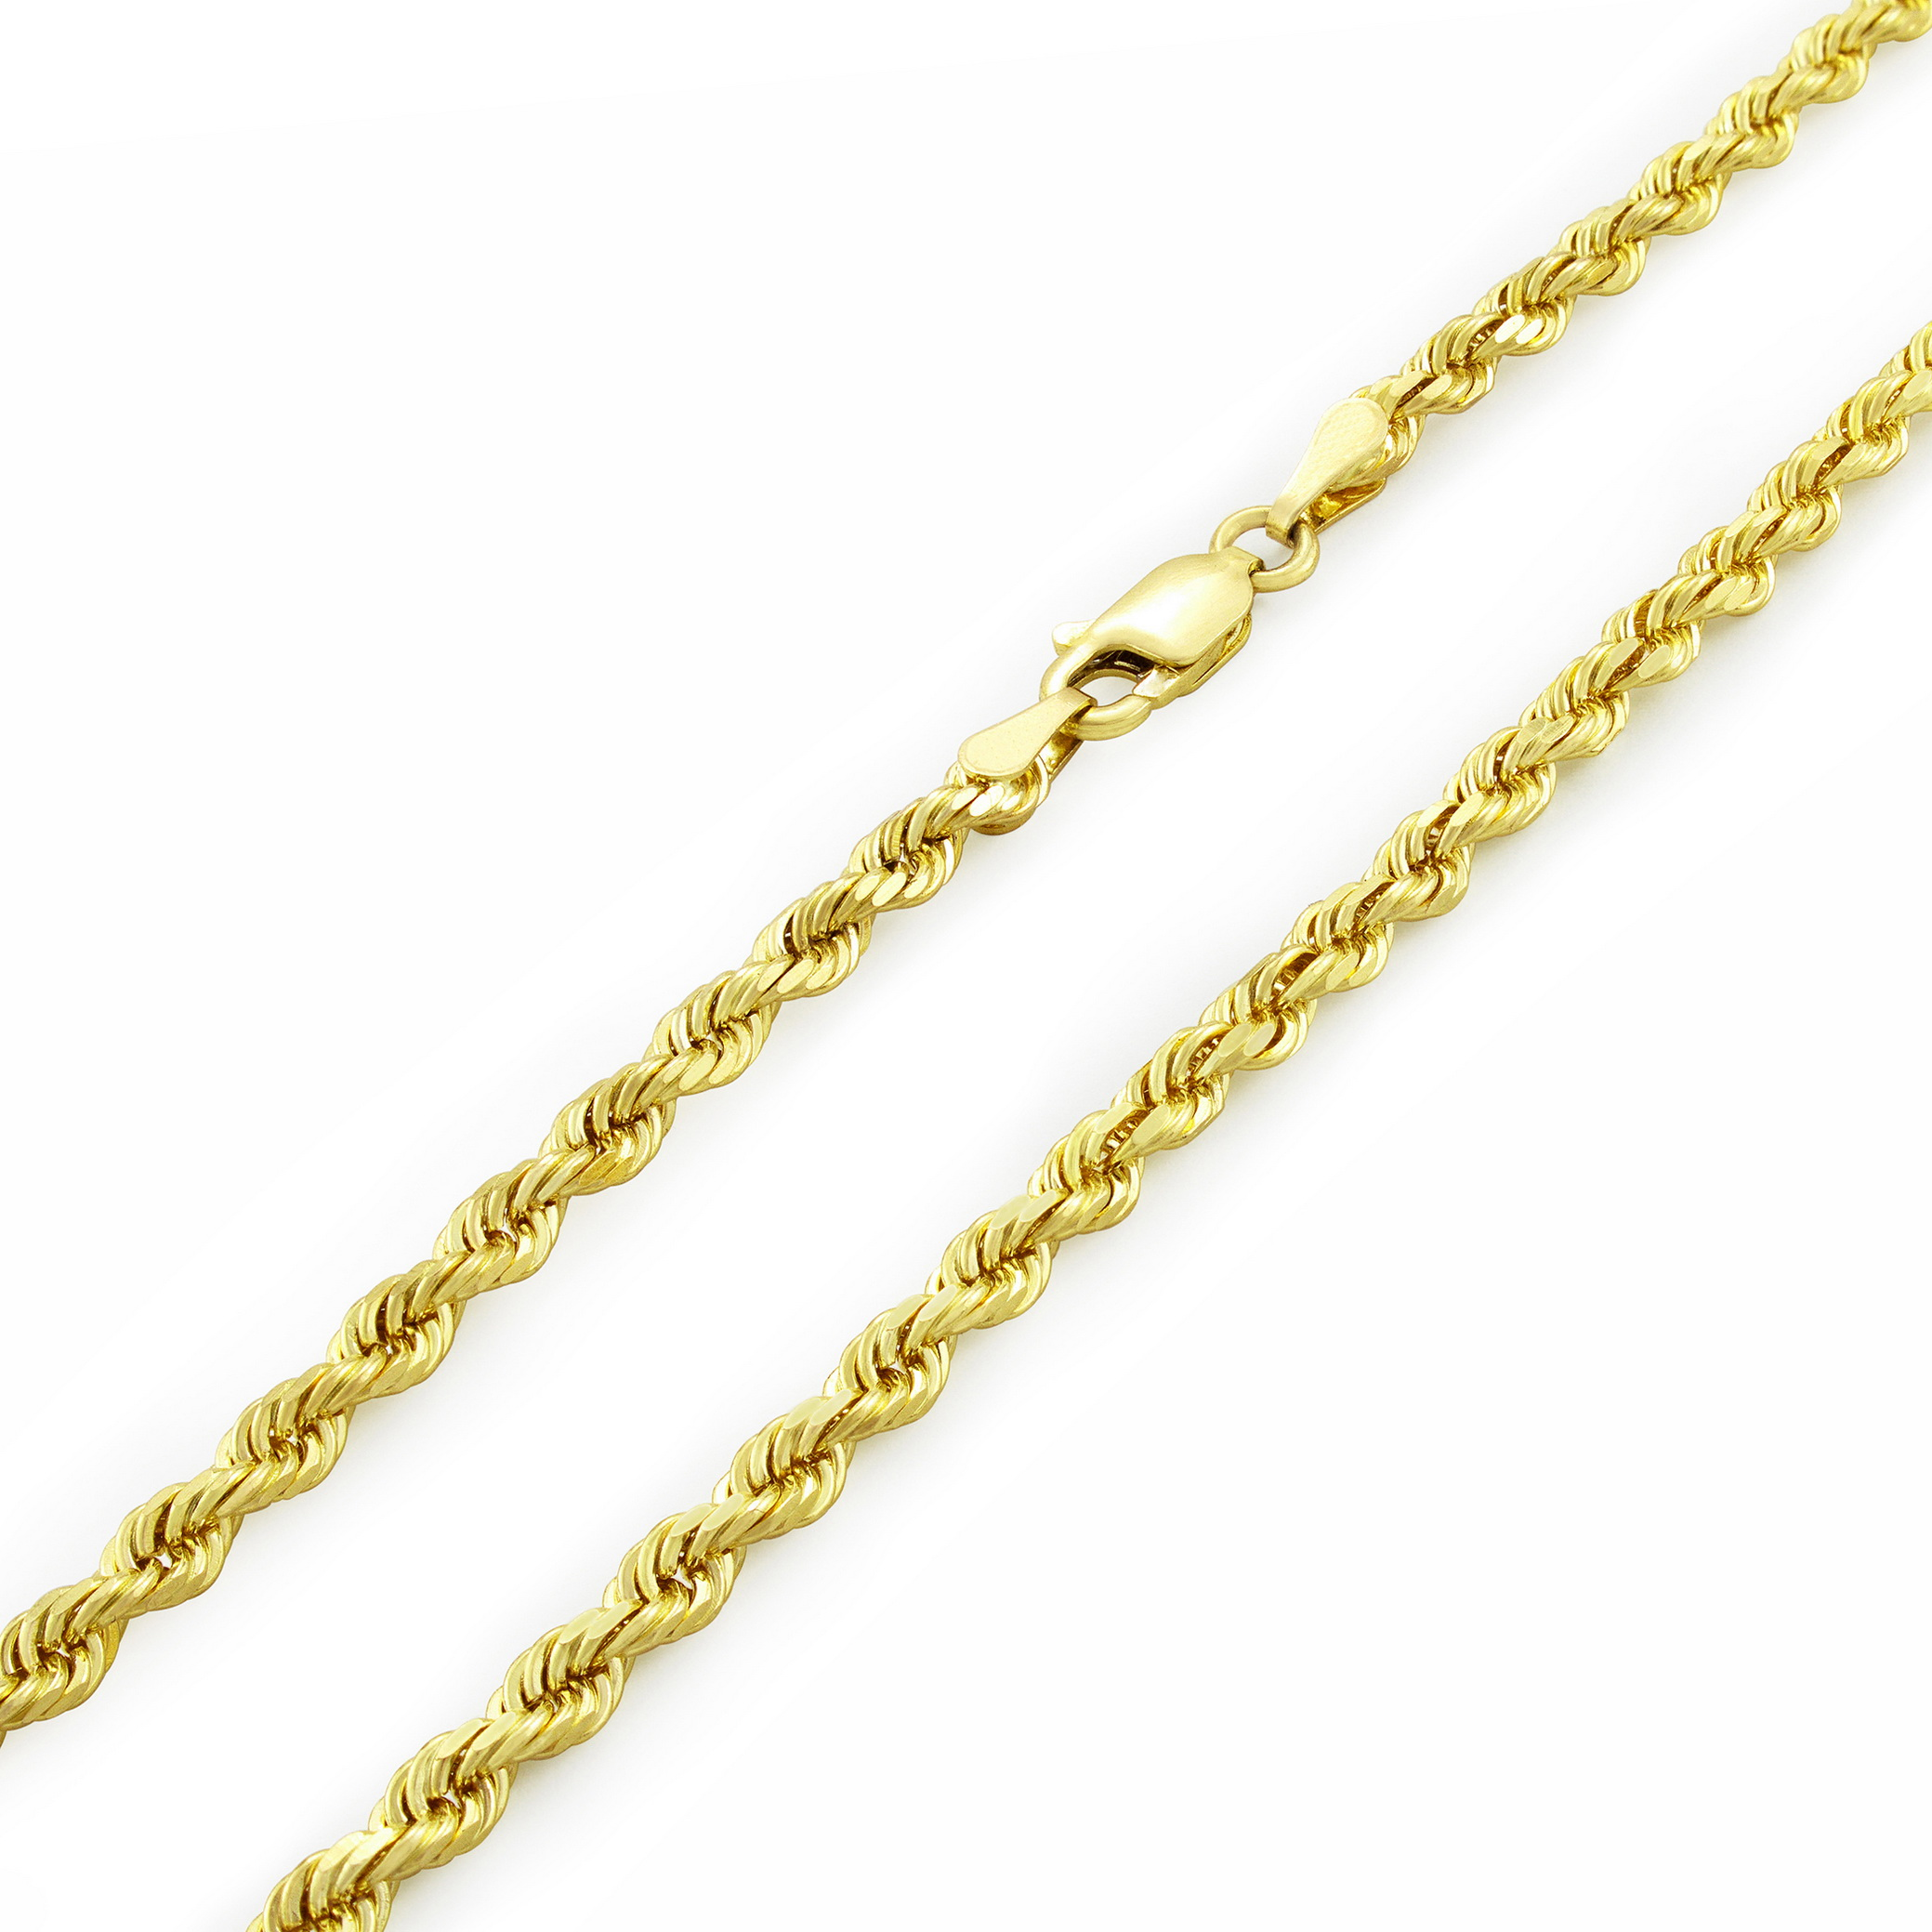 Real-14K-Yellow-Gold-3mm-Diamond-Cut-Rope-Chain-Necklace-Lobster-Clasp-18-034-30-034 thumbnail 23